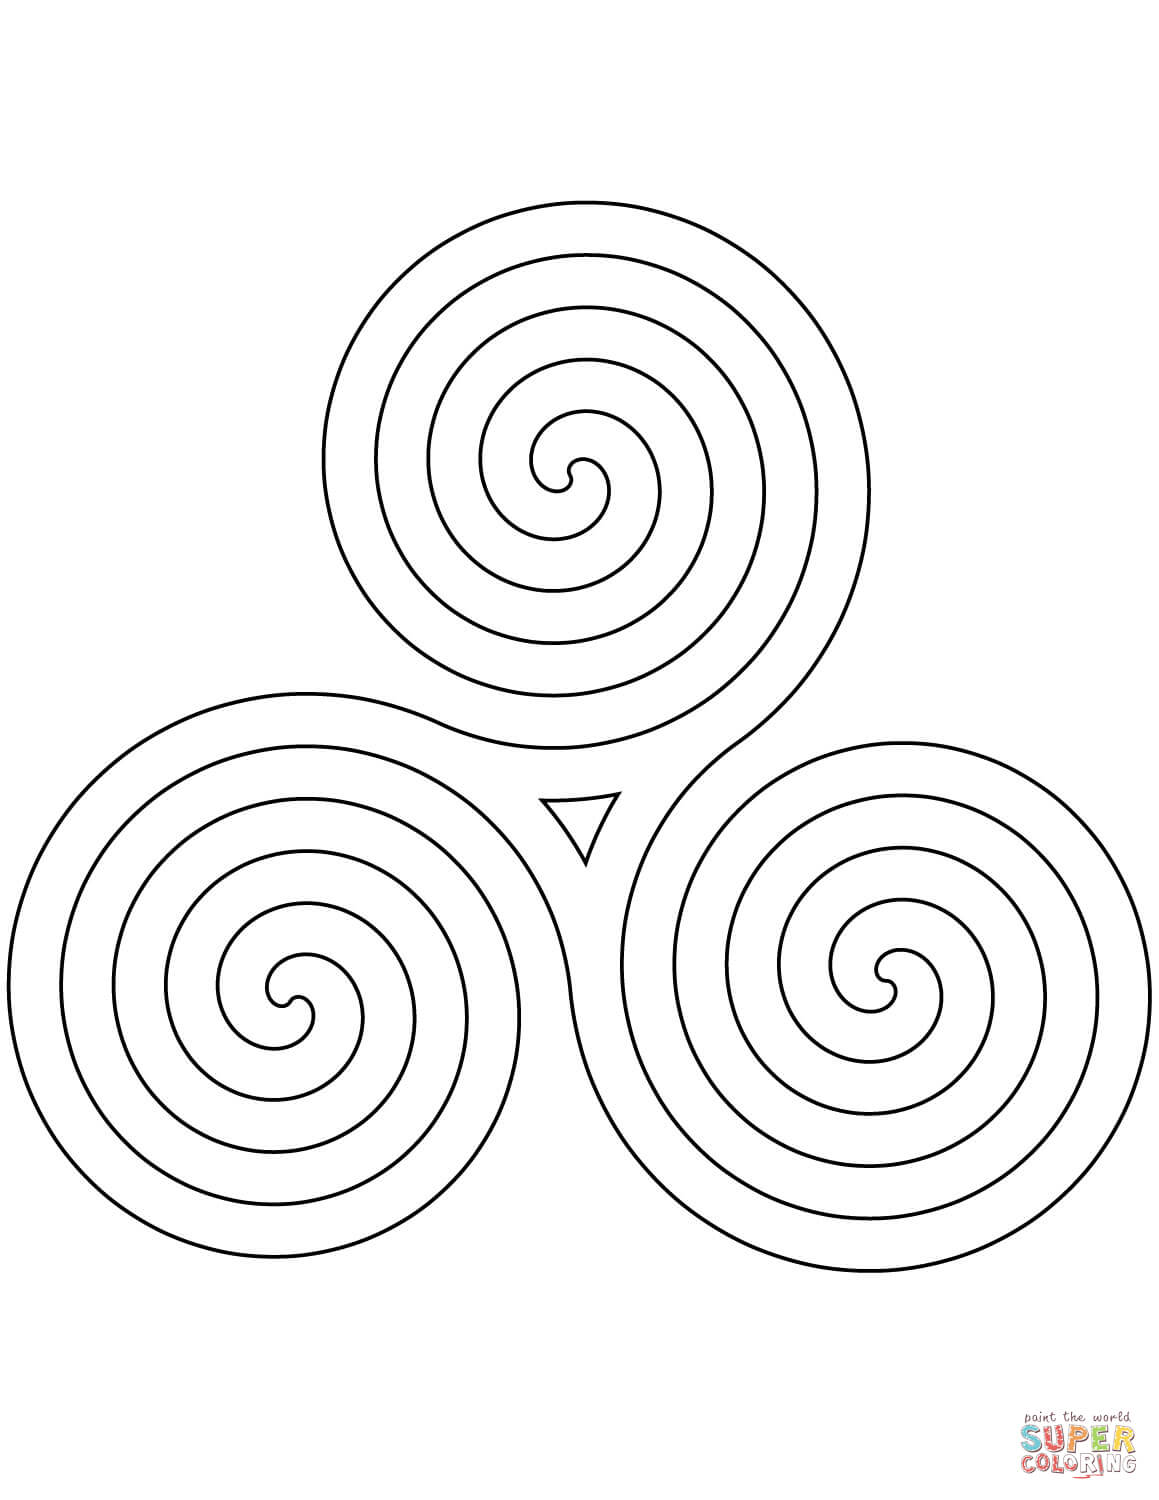 spiral pictures to color spiral coloring download spiral coloring for free 2019 spiral color pictures to